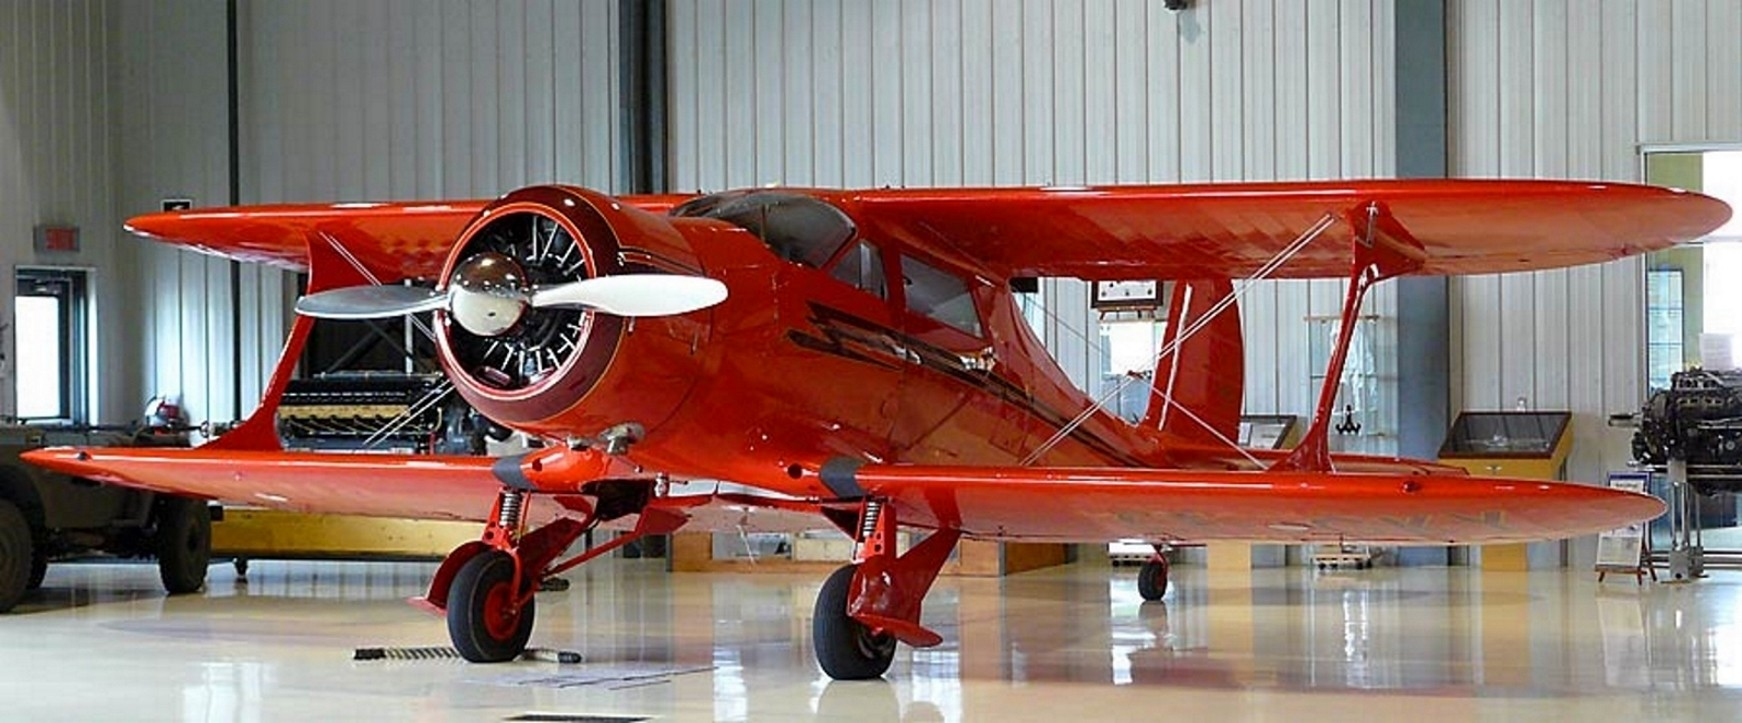 Beechcraft Model 17 Staggerwing - Sprehod Okoli